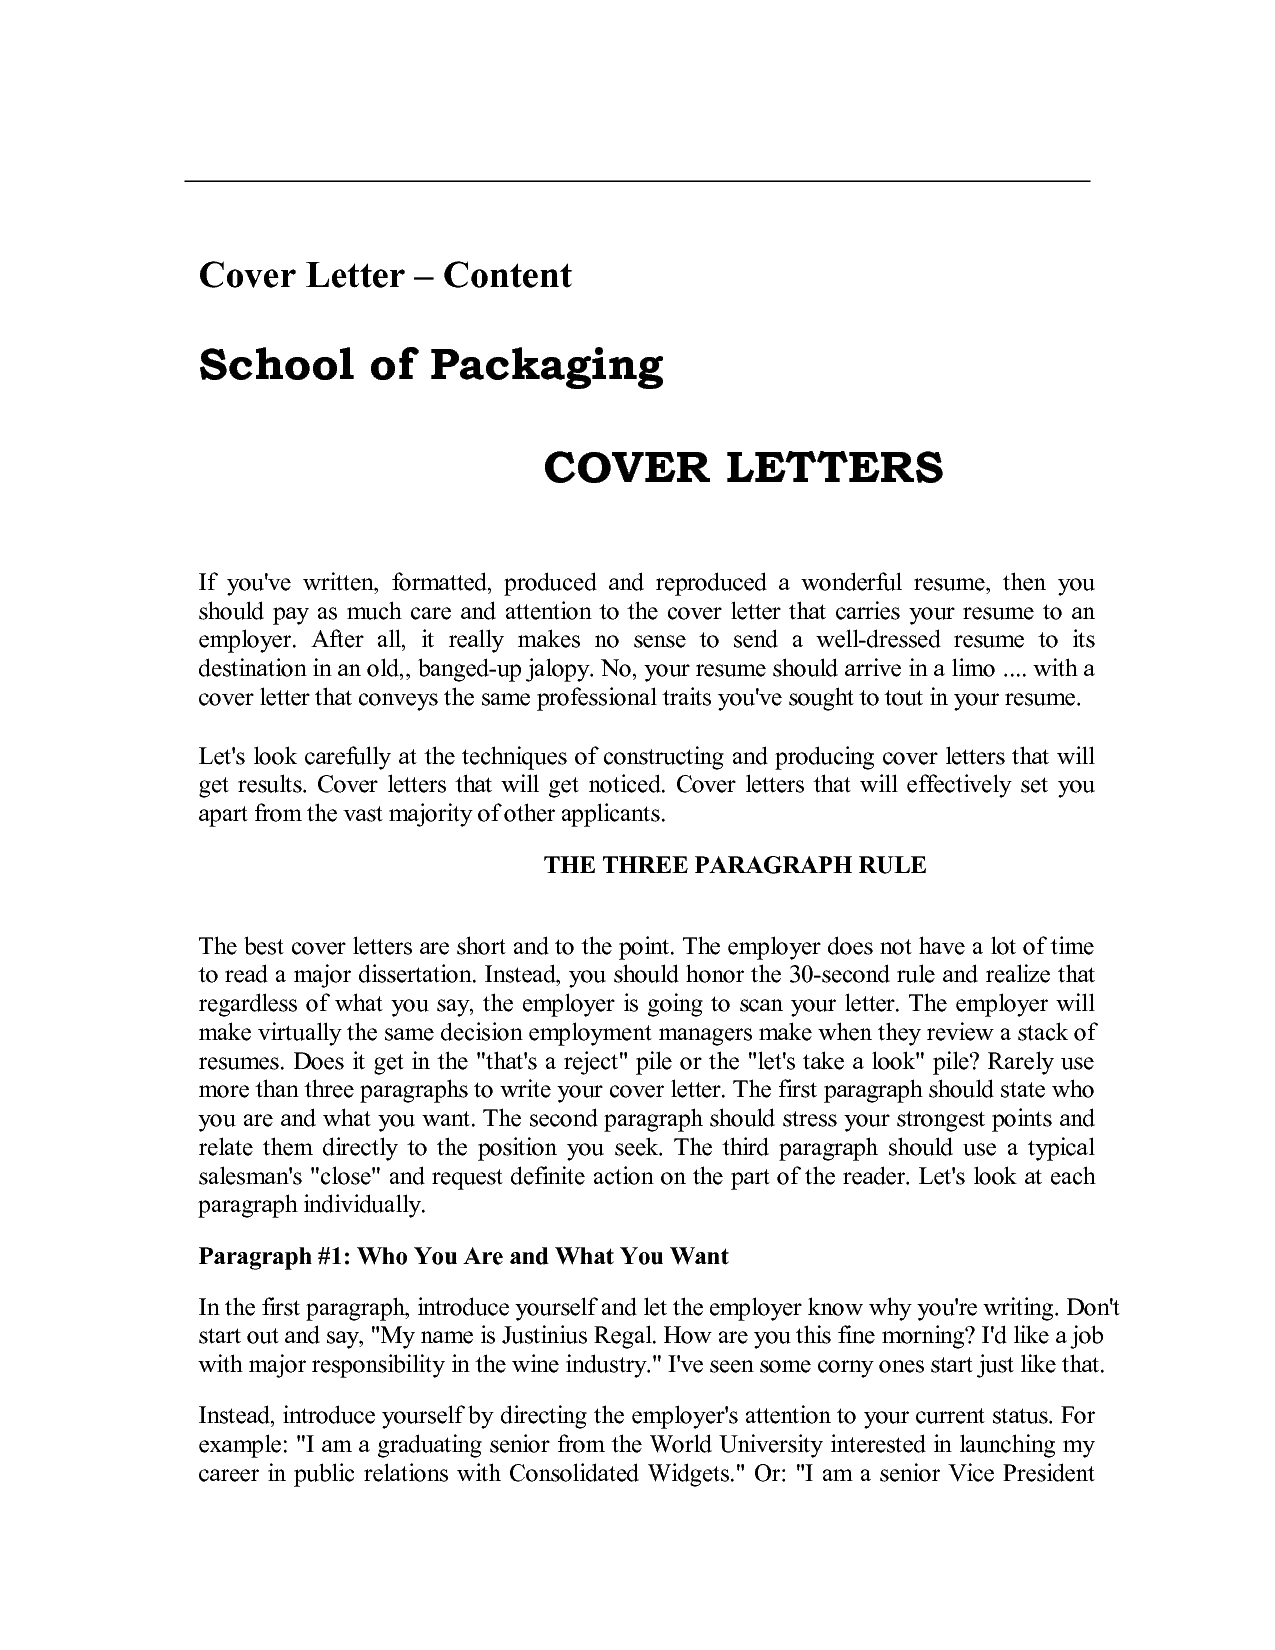 Cover letters pdf with resumecover letter for resume cover letter cover letters pdf with resumecover letter for resume cover letter examples mitanshu Images